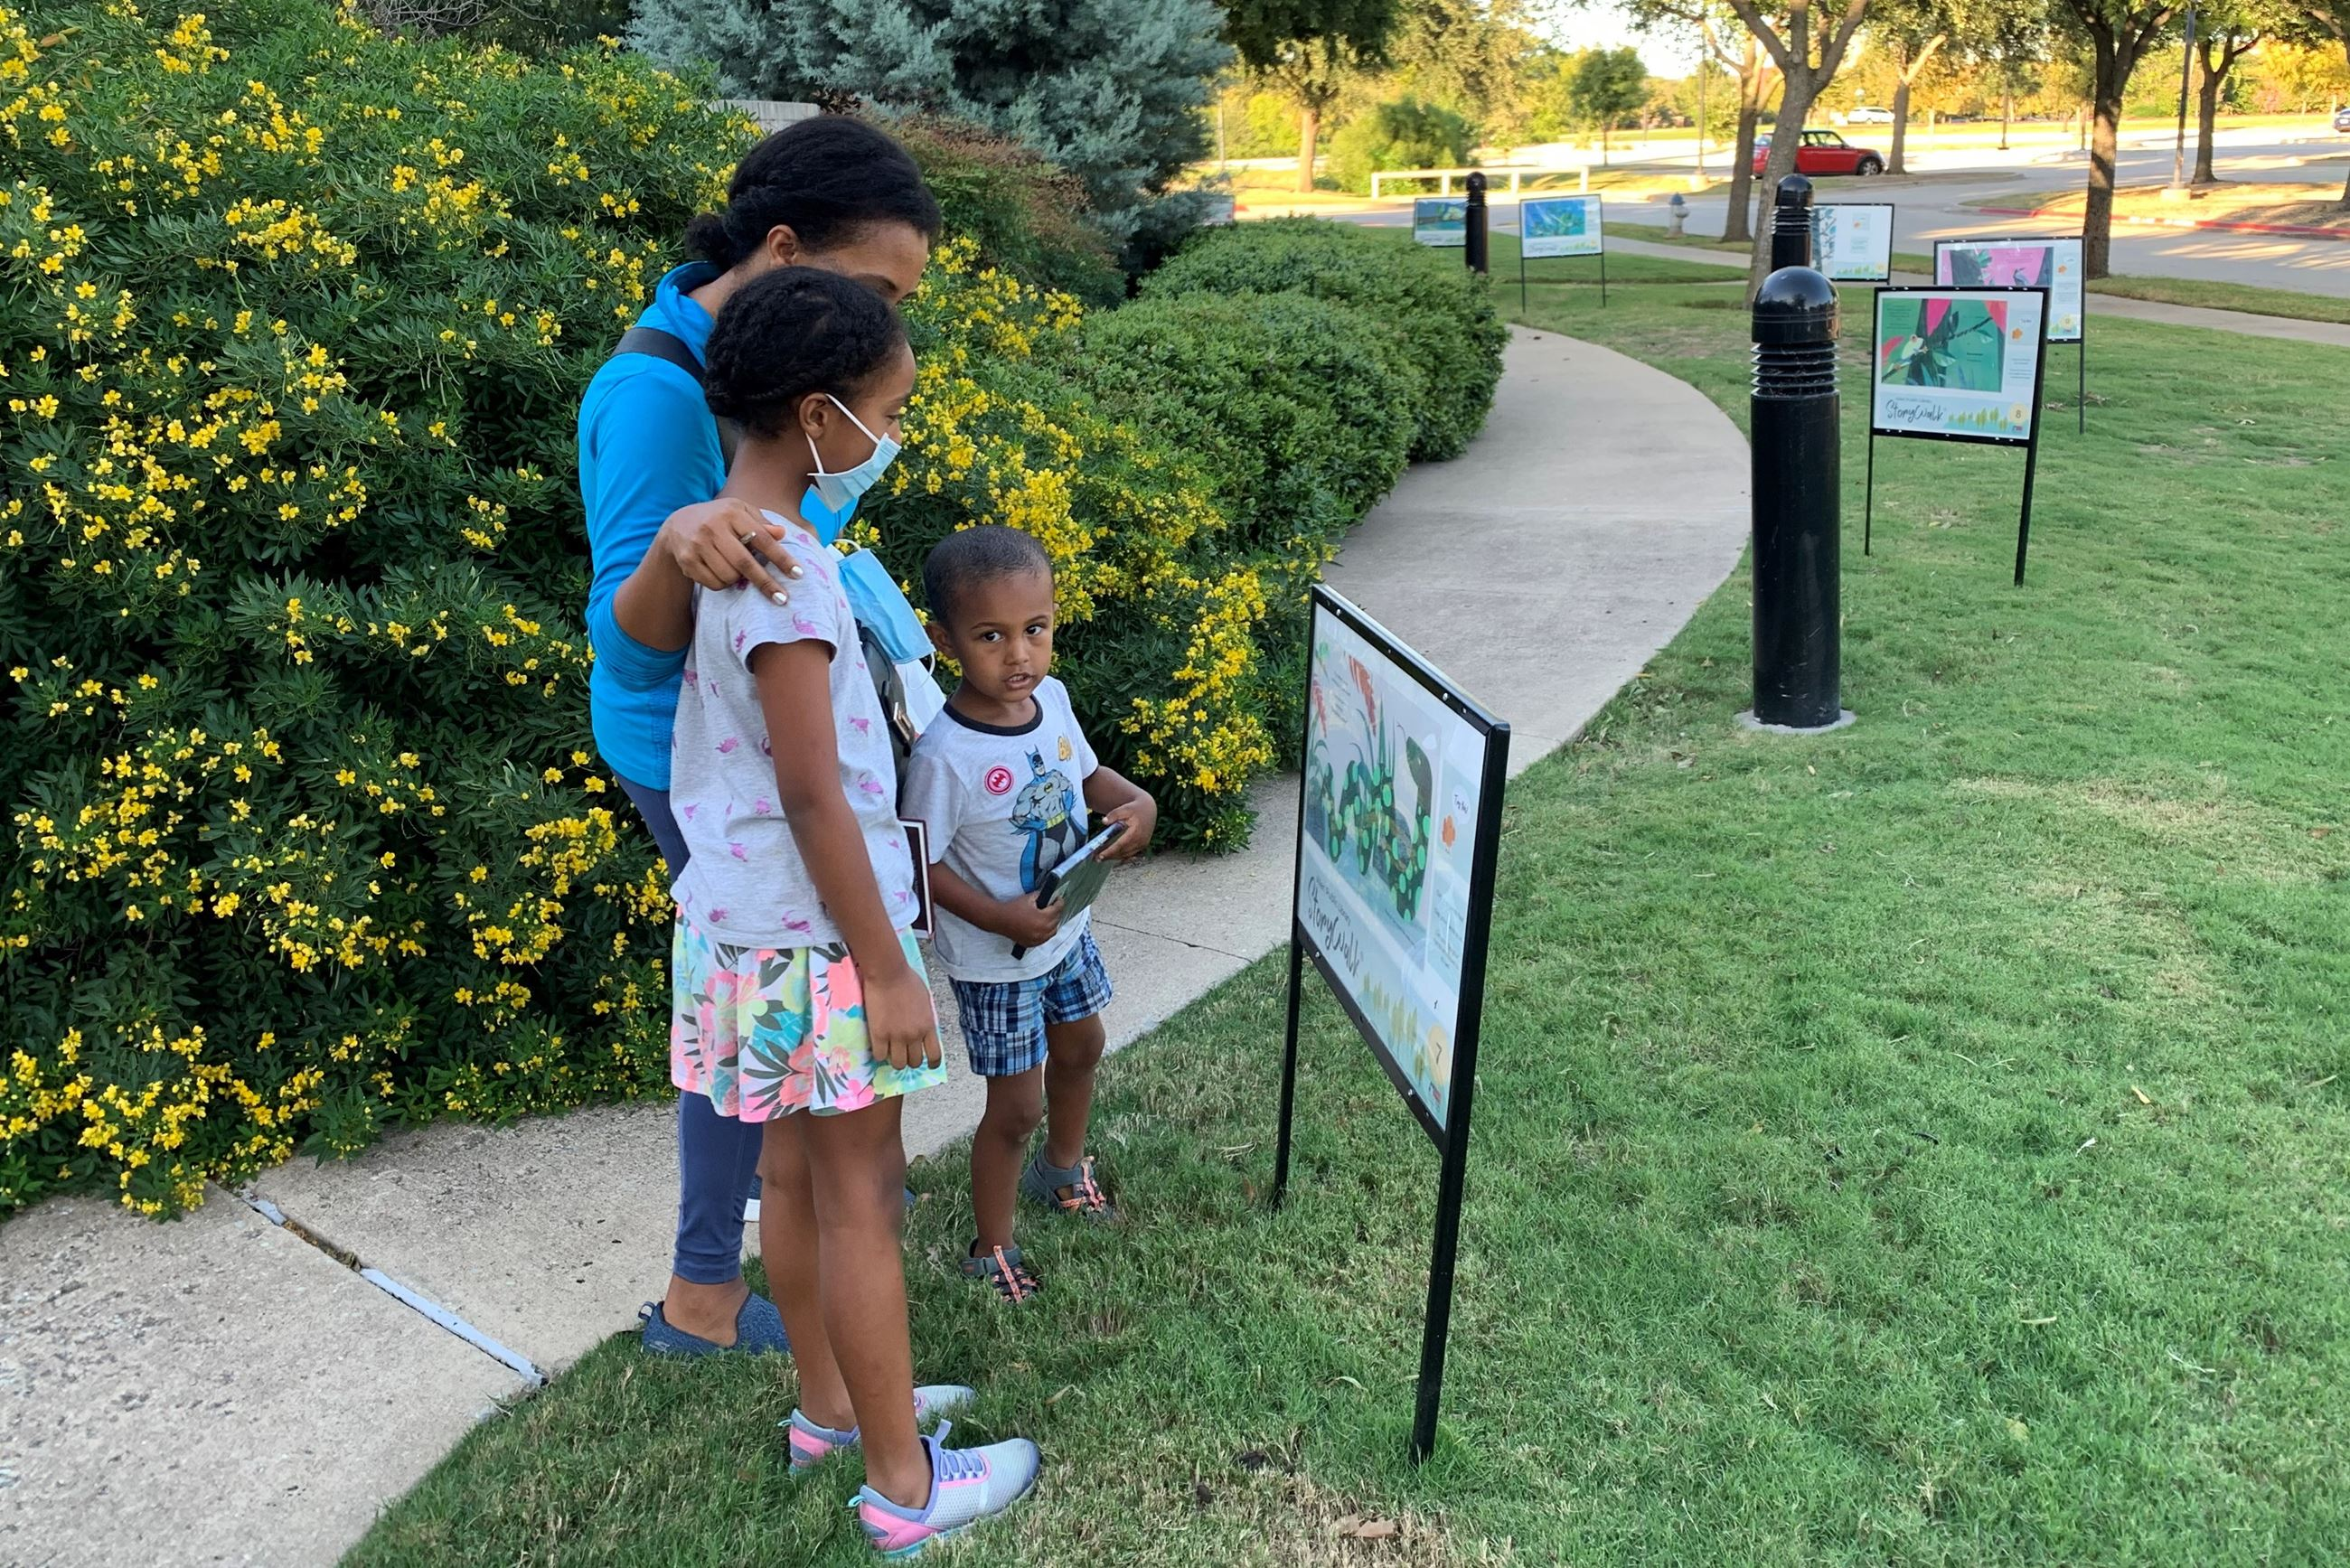 Family looking at one of the StoryWalk signs outside